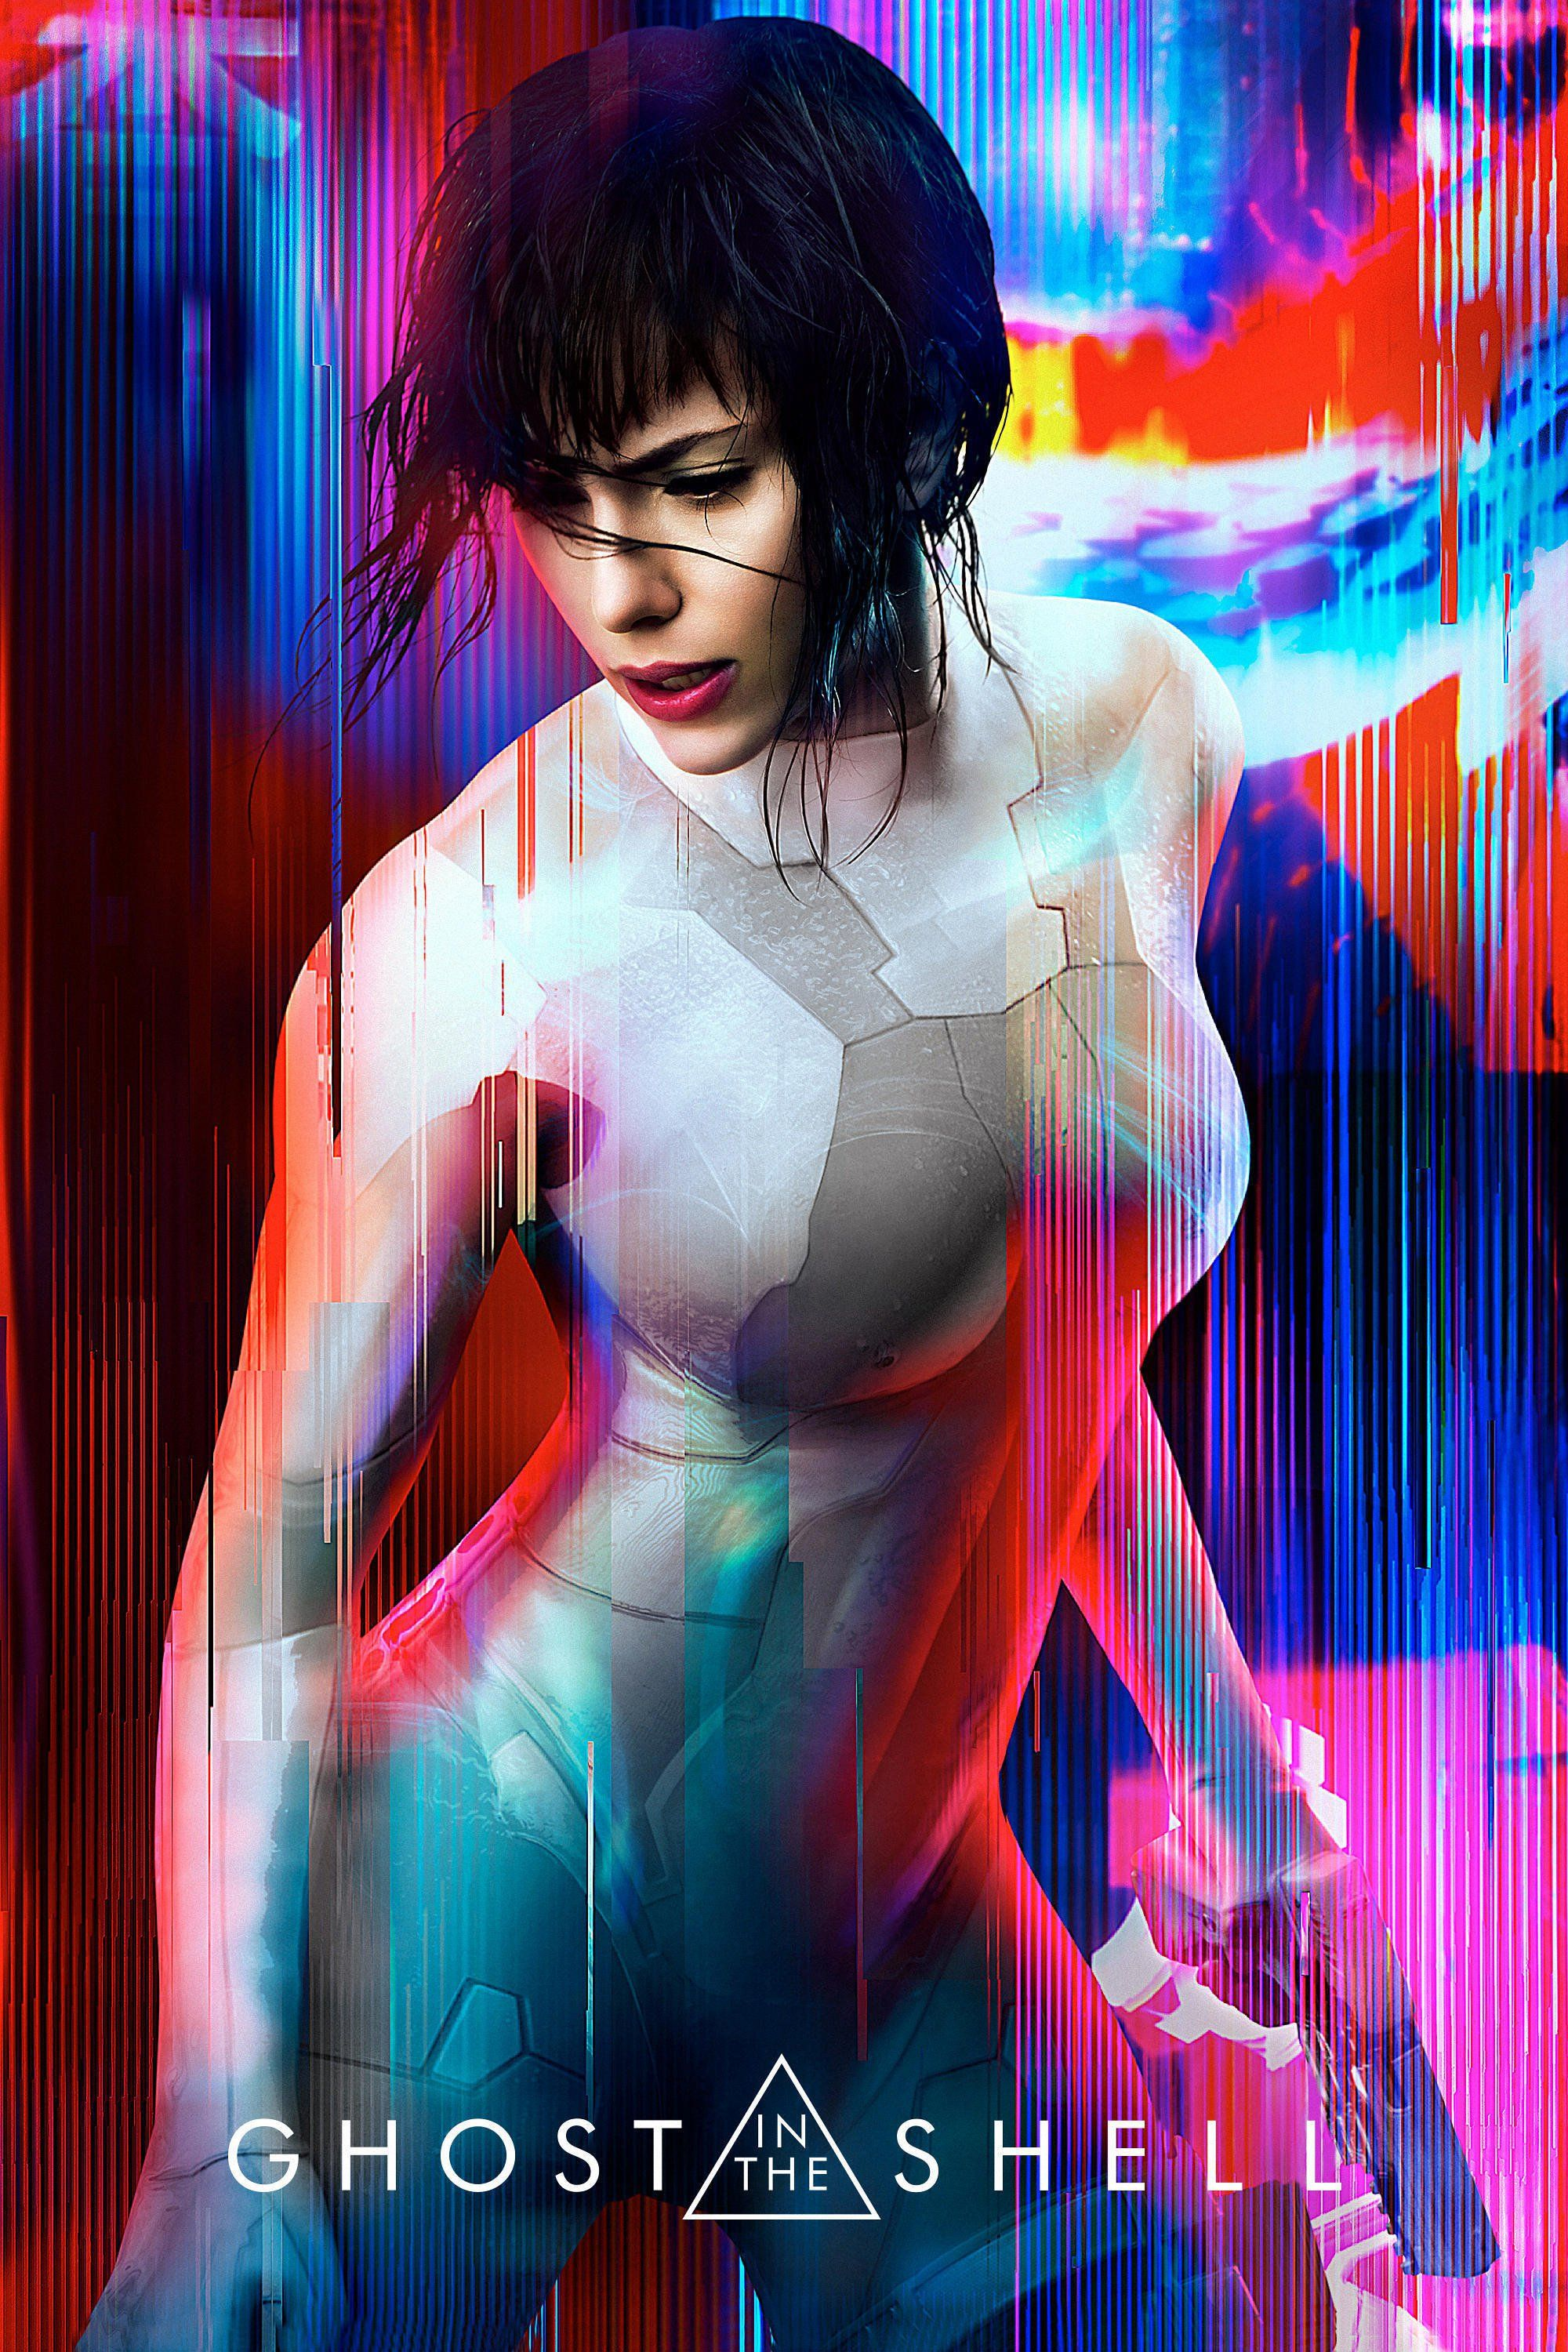 ghost in a shell) The movie was quite disappointing since the big ...